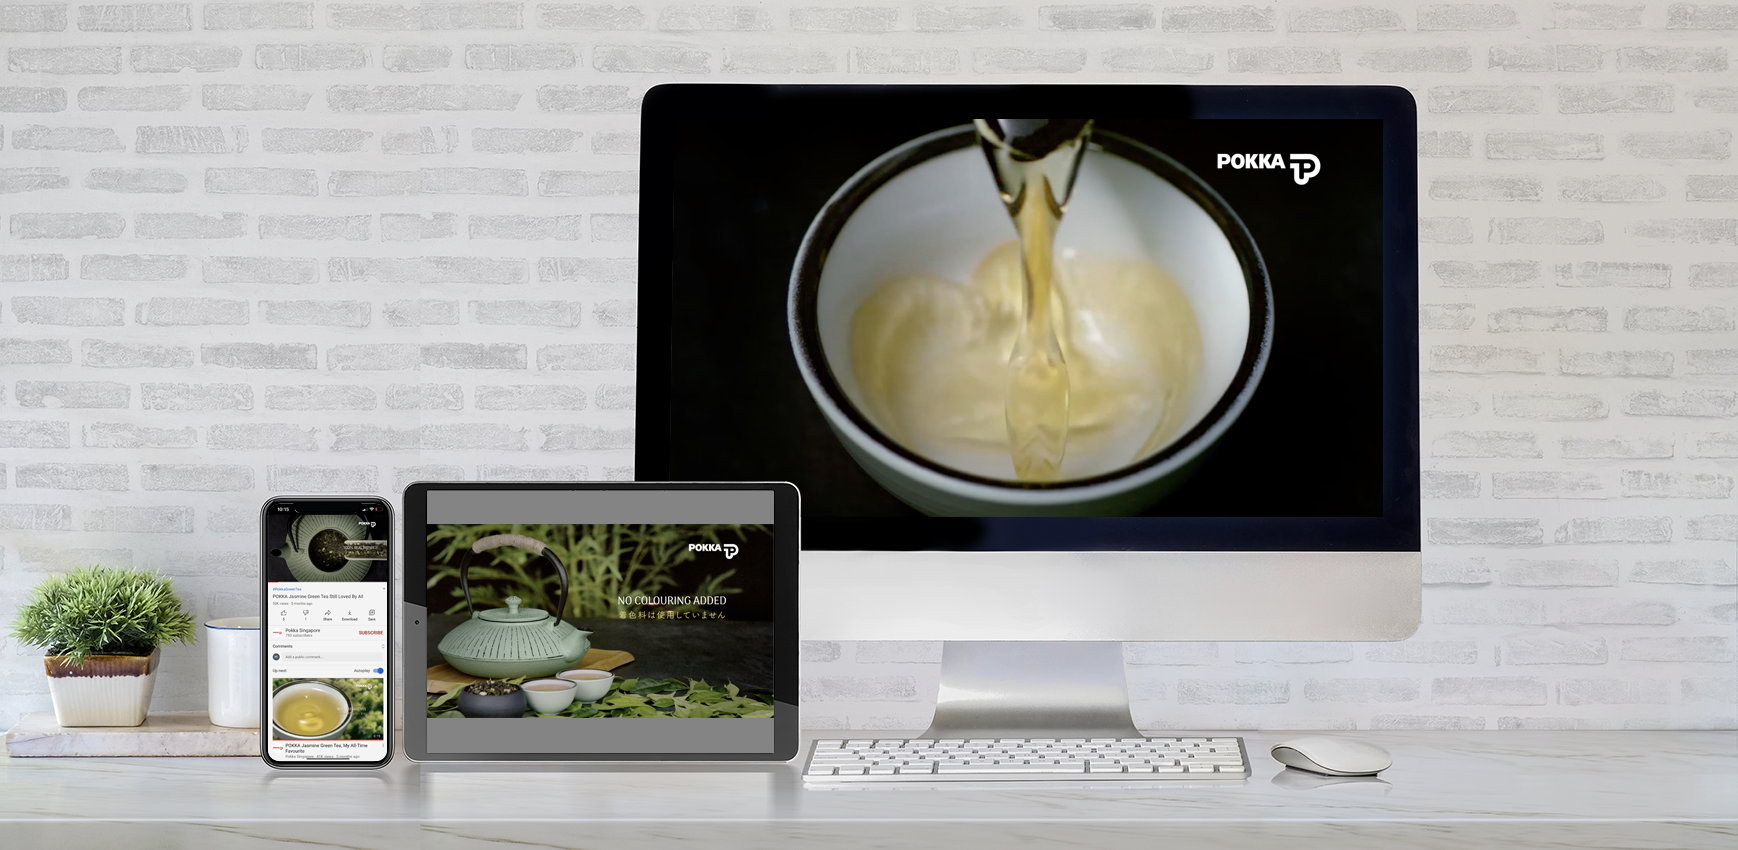 POKKA Jasmine Green Tea Video Ads With Most Digital Agency